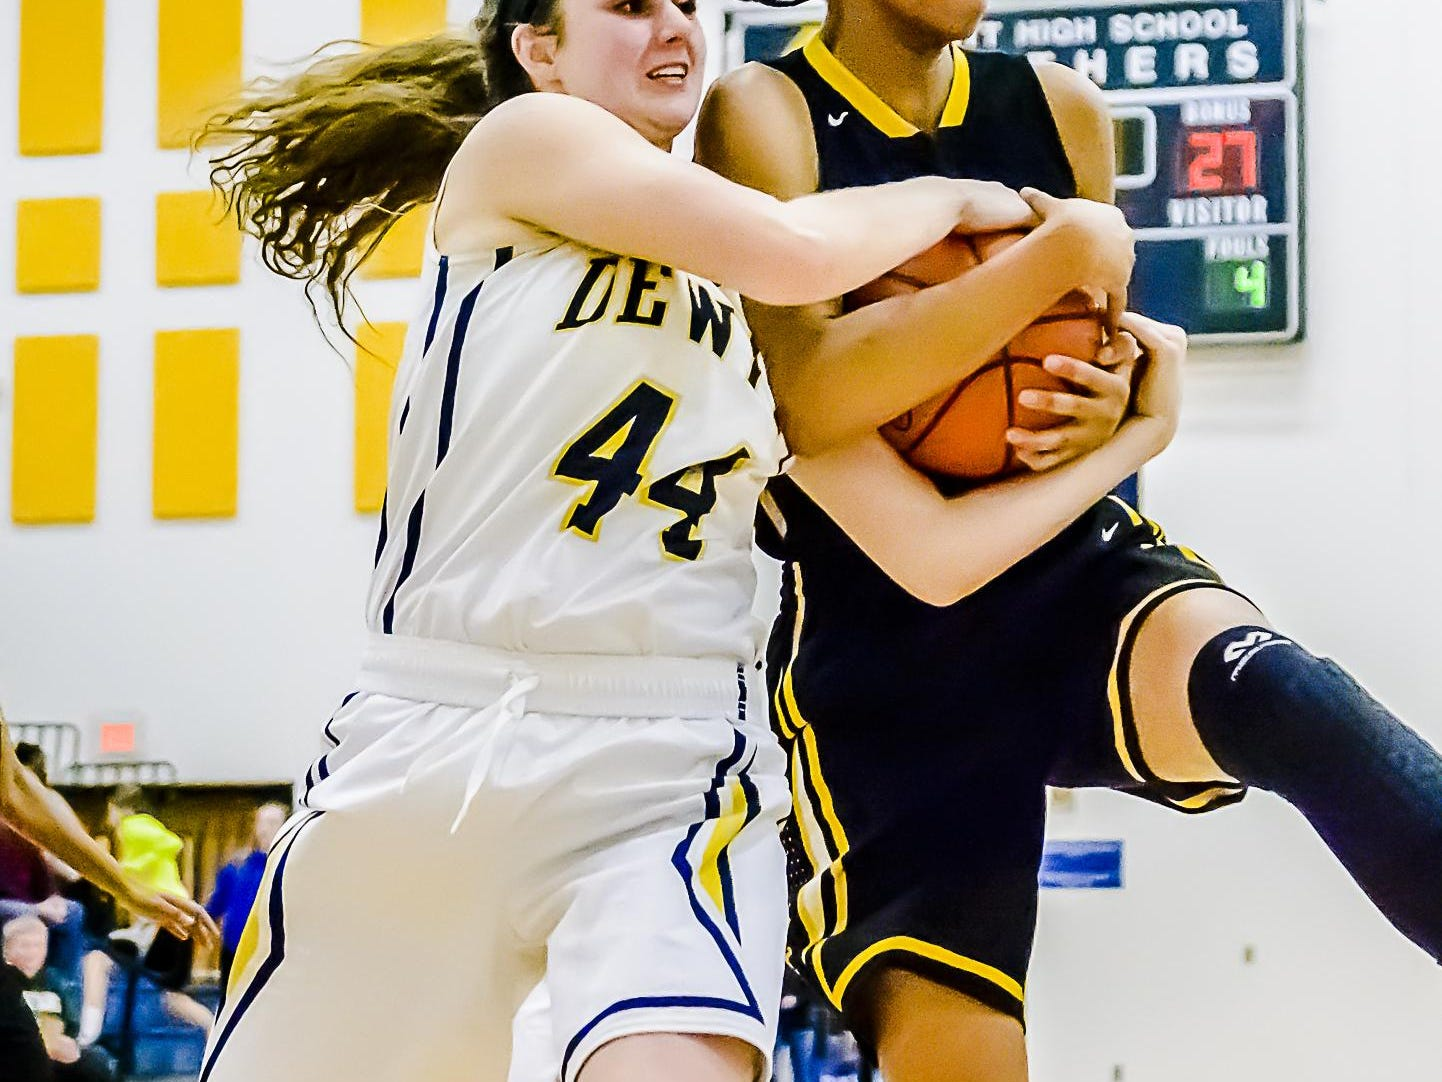 Alisia Smith ,right, of Waverly grabs the ball from Lilly George of DeWitt as George attempted a shot during their game Friday February 12, 2016 in DeWitt. KEVIN W. FOWLER PHOTO